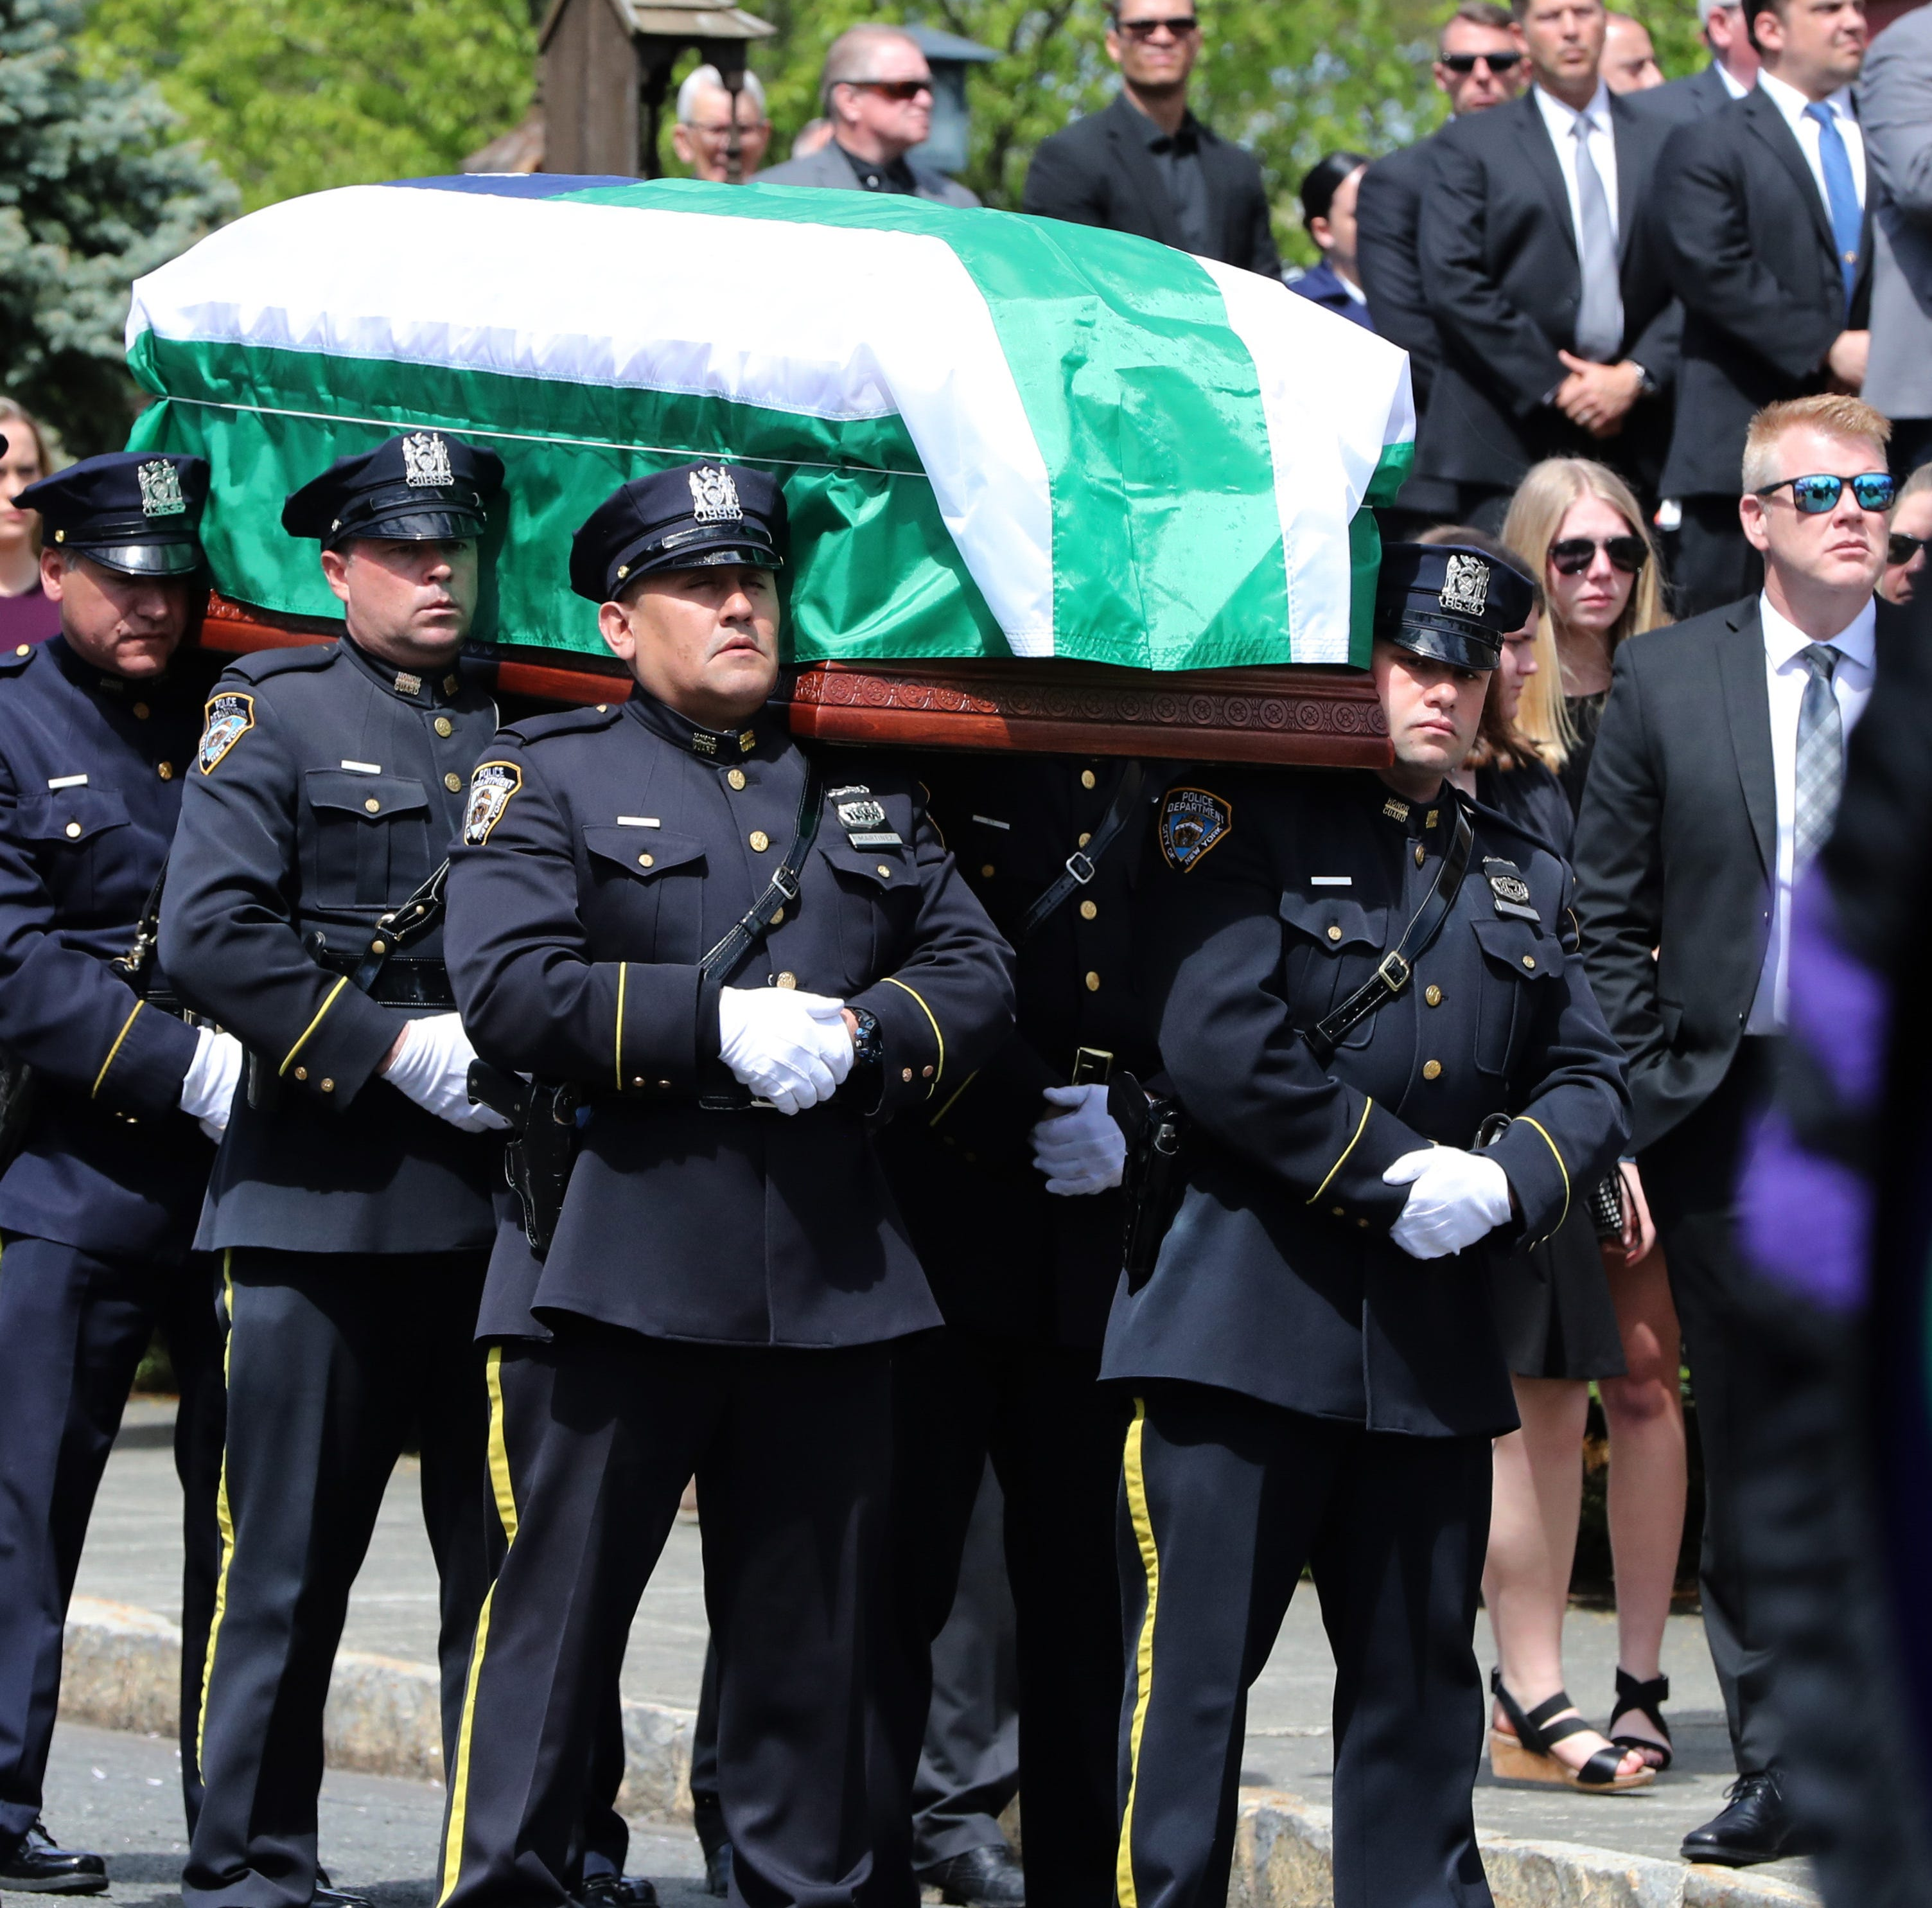 Lost to 9/11 illness: NYPD Officer Patrick McGovern of Pearl River mourned